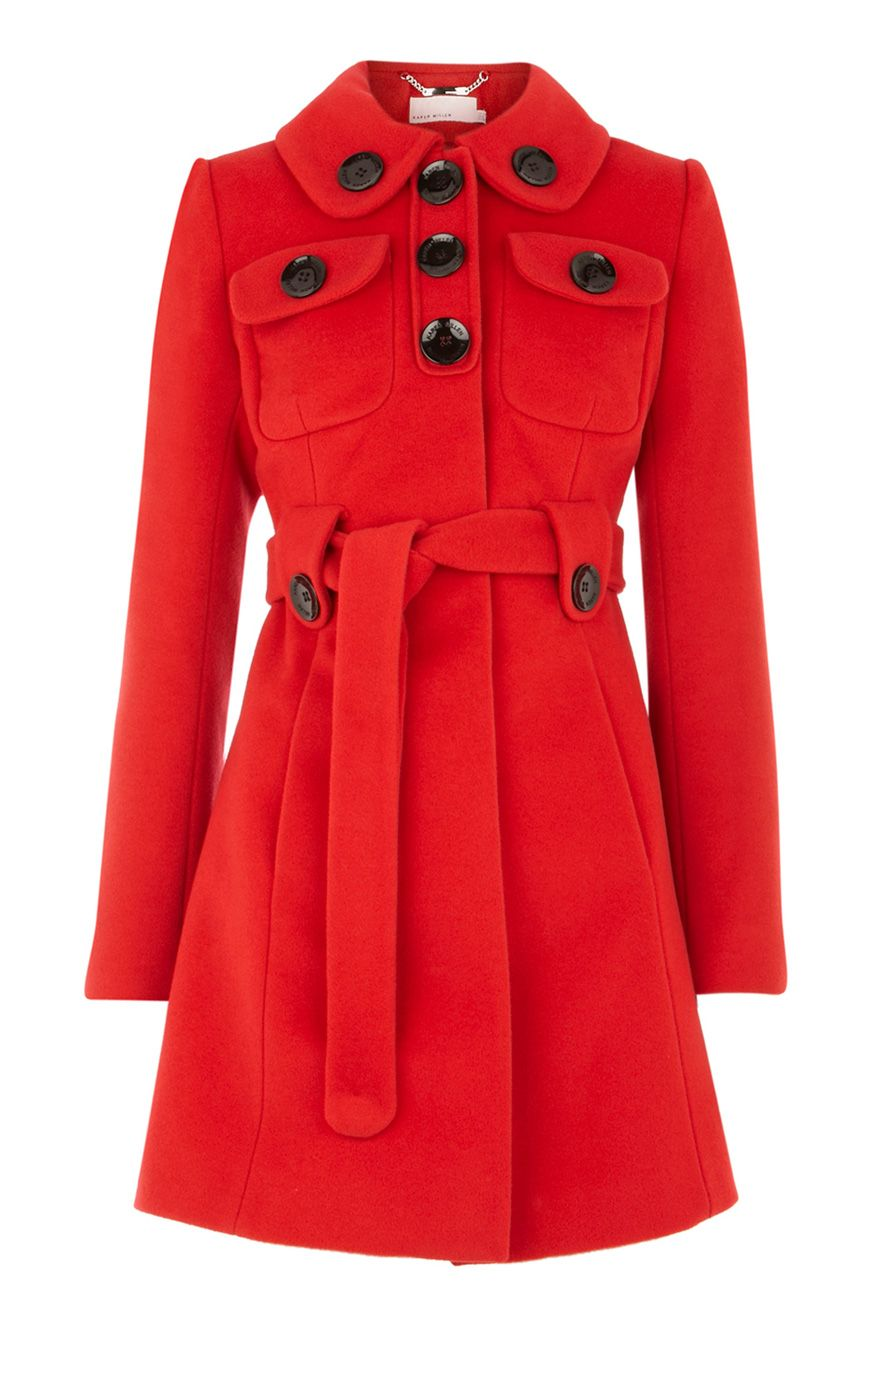 Karen Millen Feminine wool coat red  8621a4ea92821